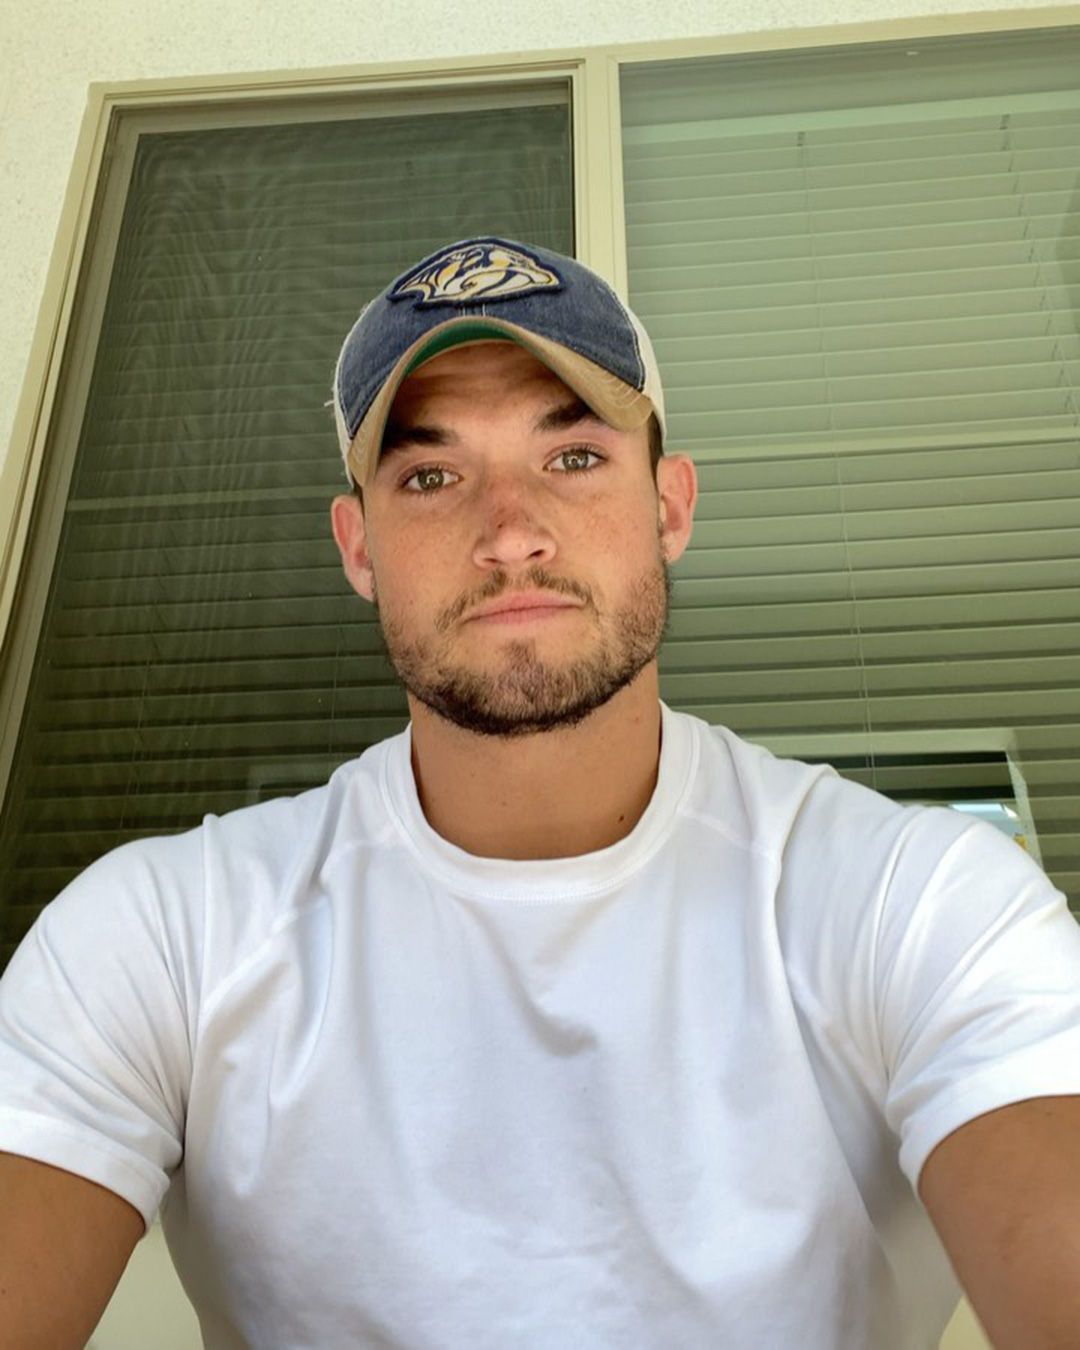 Jackson Michie Big Brother winner apologizes BLM